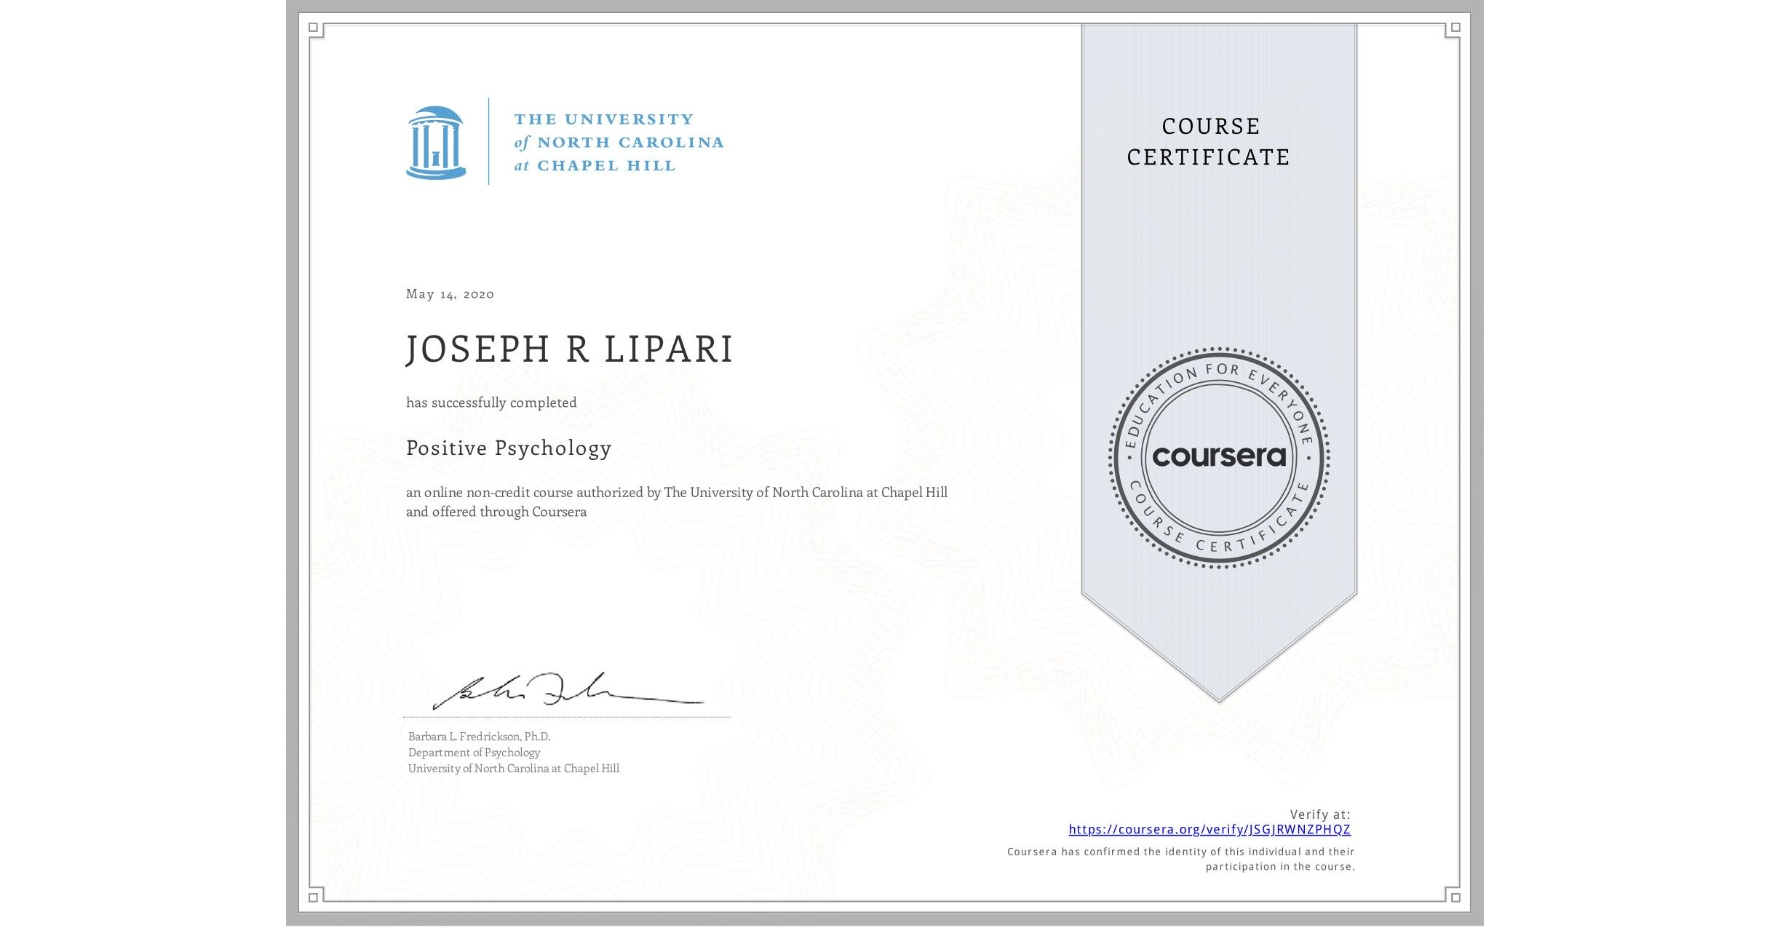 View certificate for JOSEPH R  LIPARI, Positive Psychology , an online non-credit course authorized by The University of North Carolina at Chapel Hill and offered through Coursera